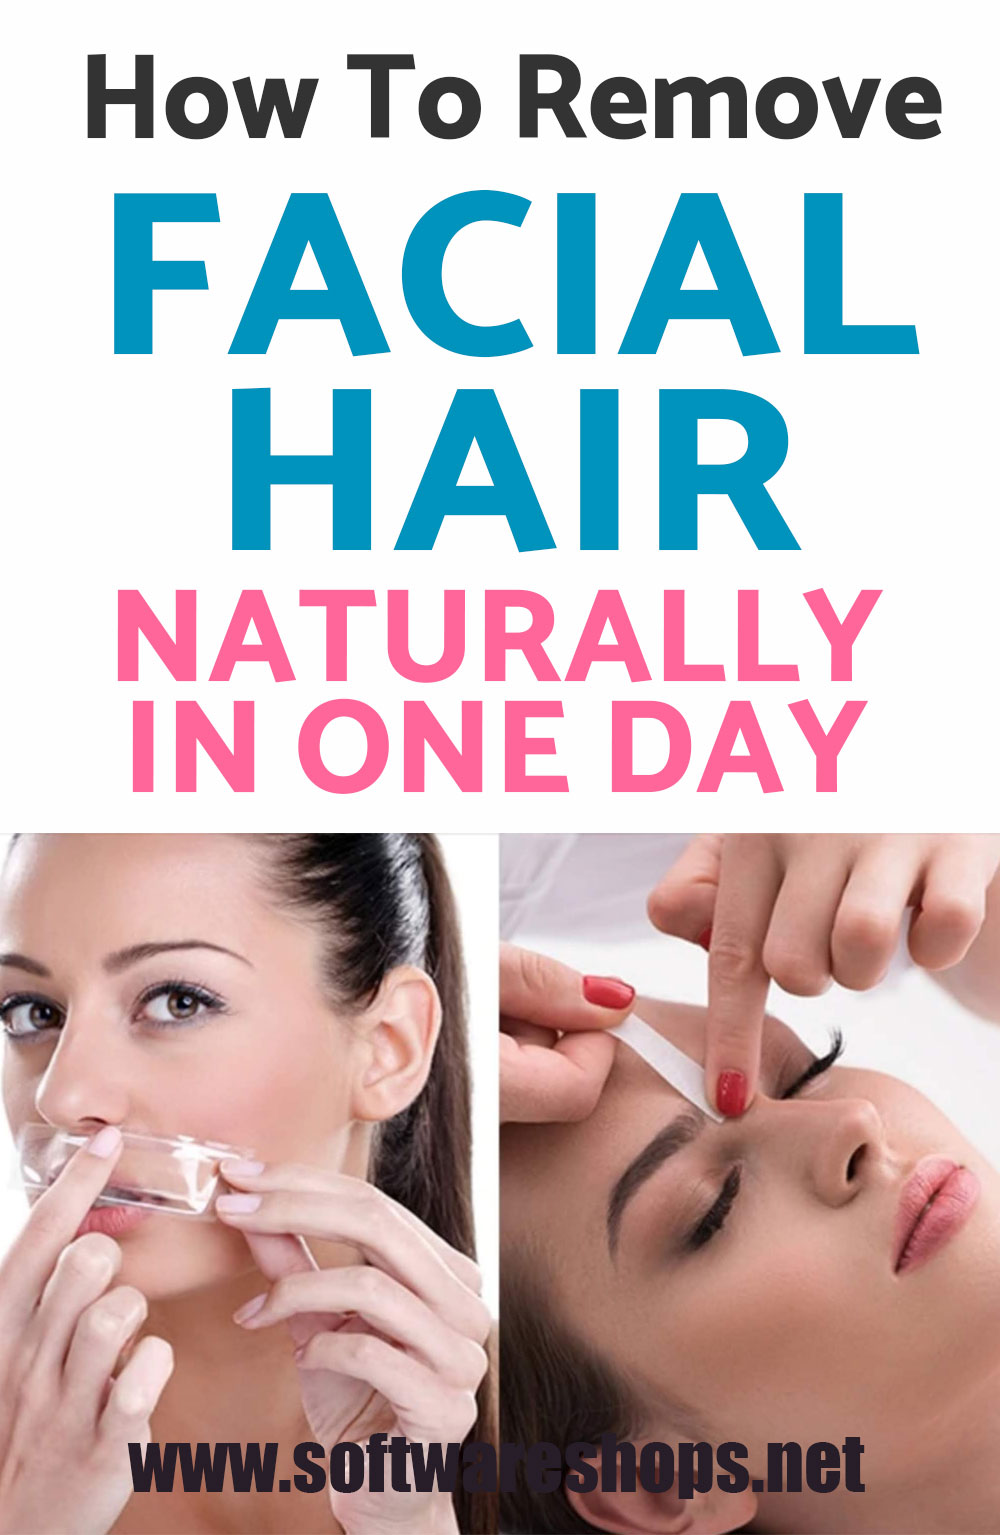 How to Remove Facial Hair Naturally in One Day